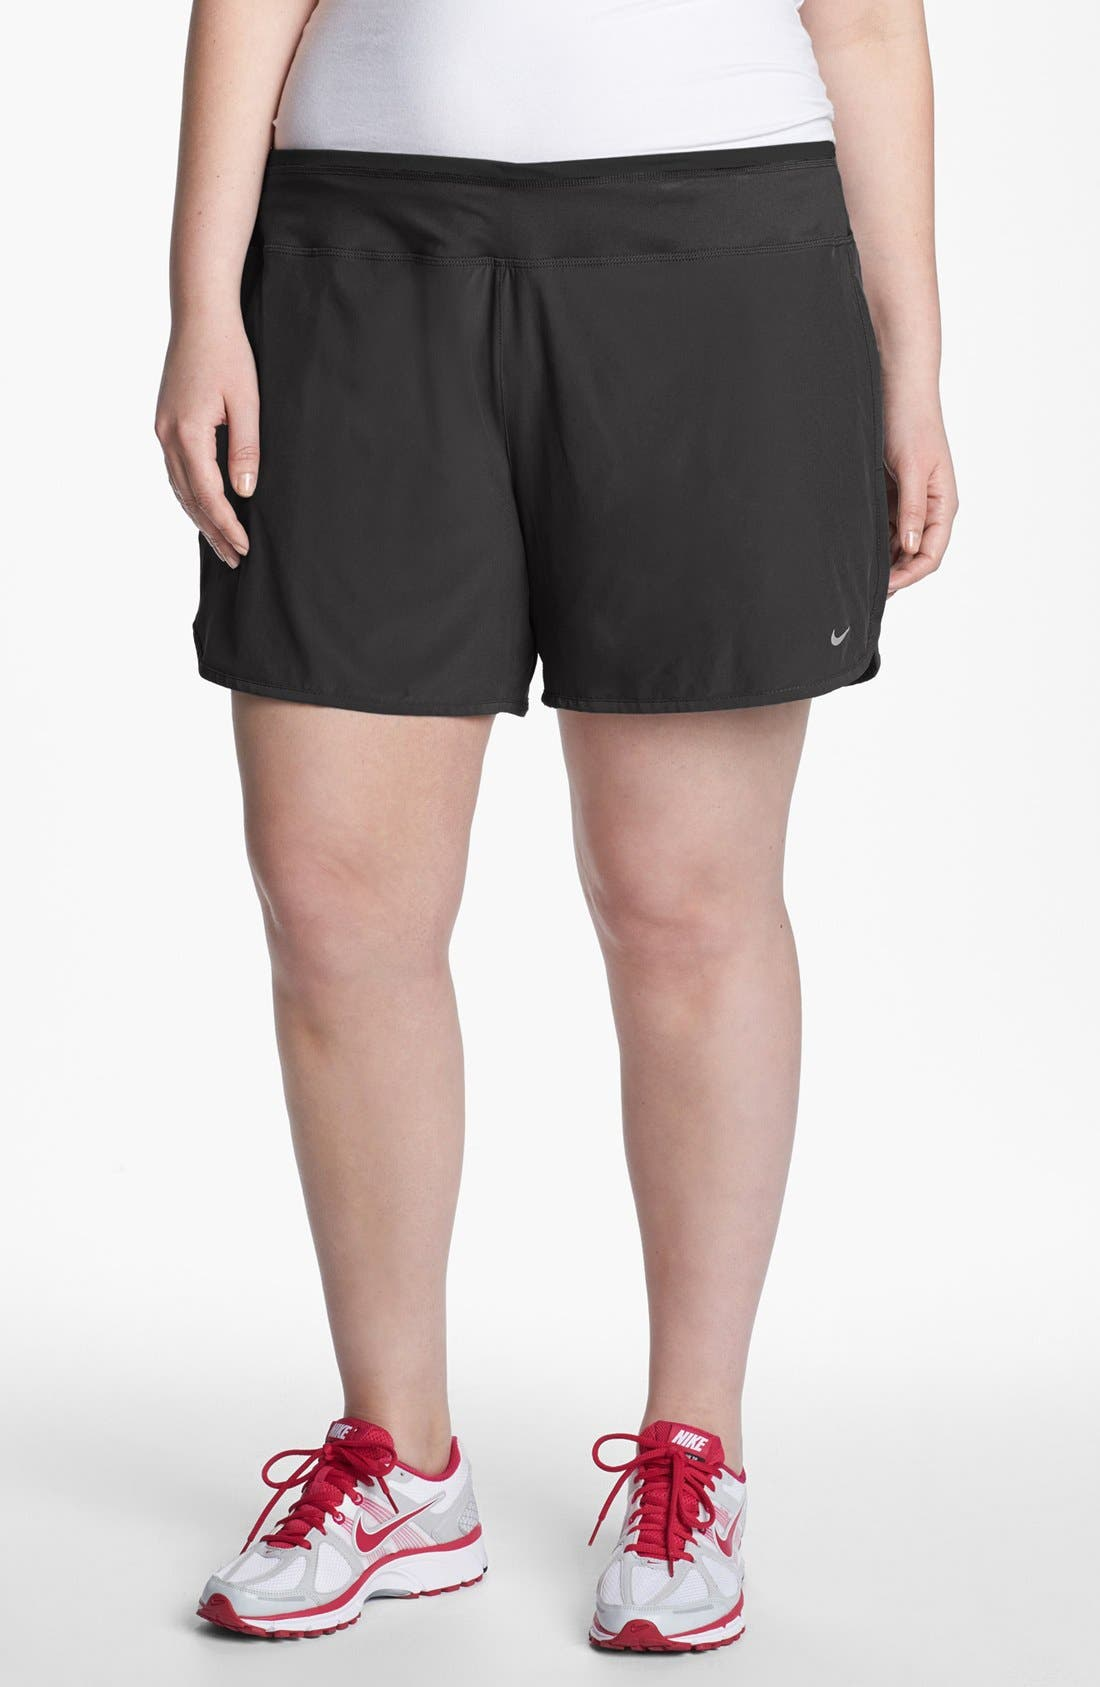 Alternate Image 1 Selected - Nike Dri-FIT Shorts (Plus Size)